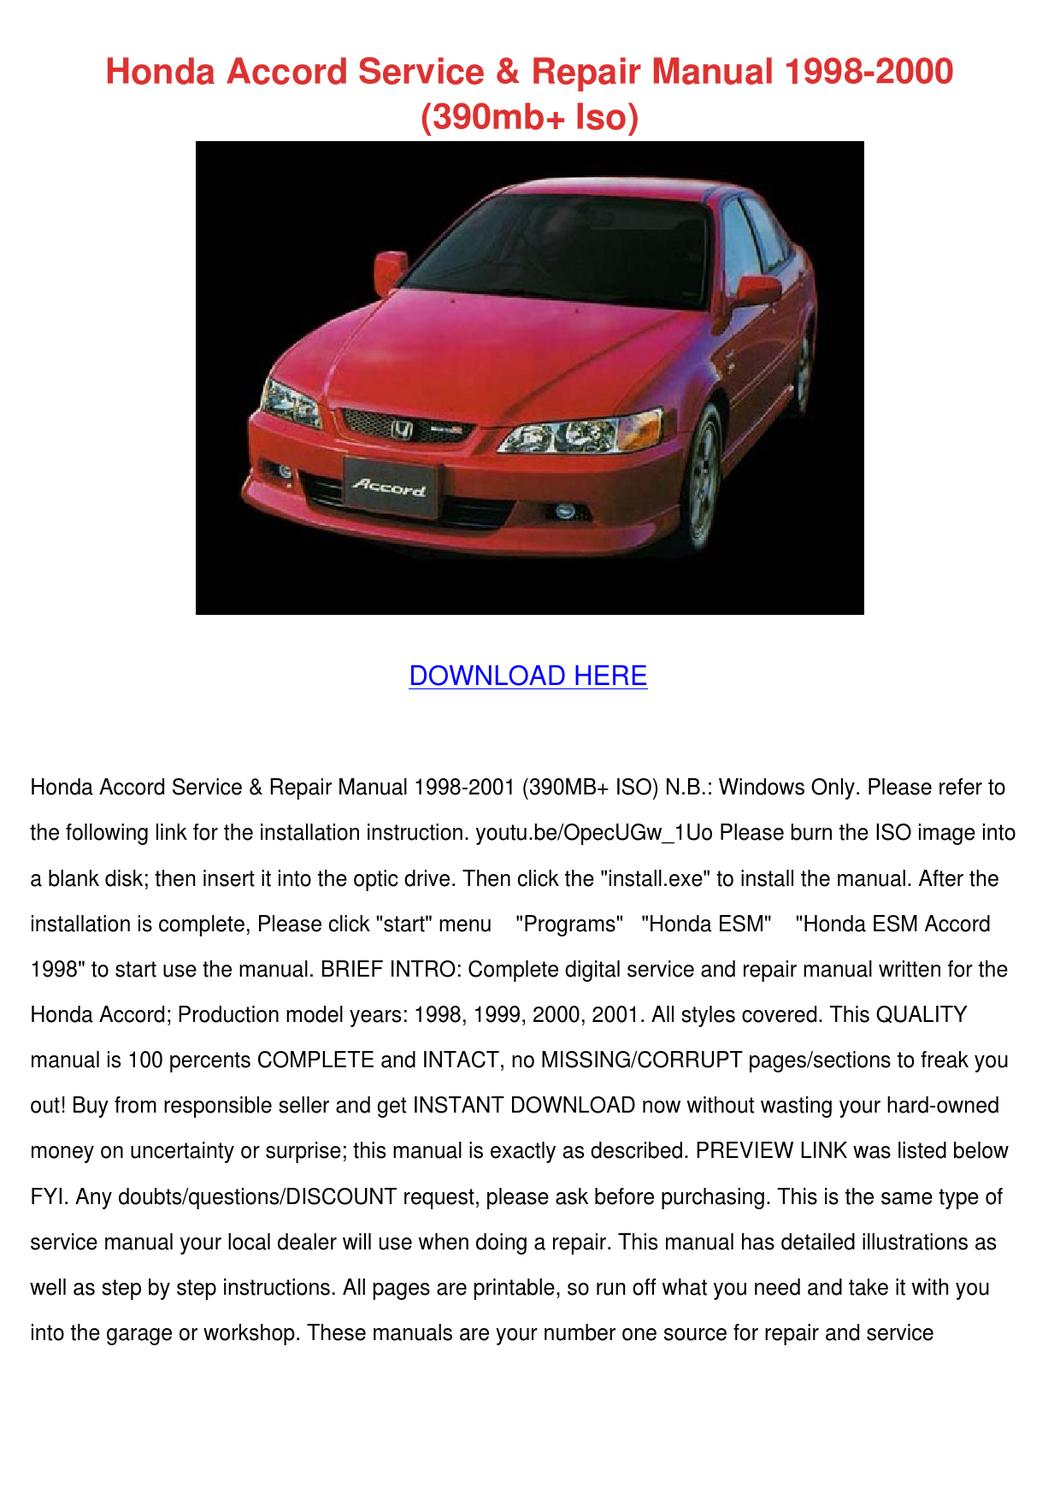 honda accord 2004 owners manual pdf fiat world test drive 2004 honda accord user manual 2004 honda accord owners manual online